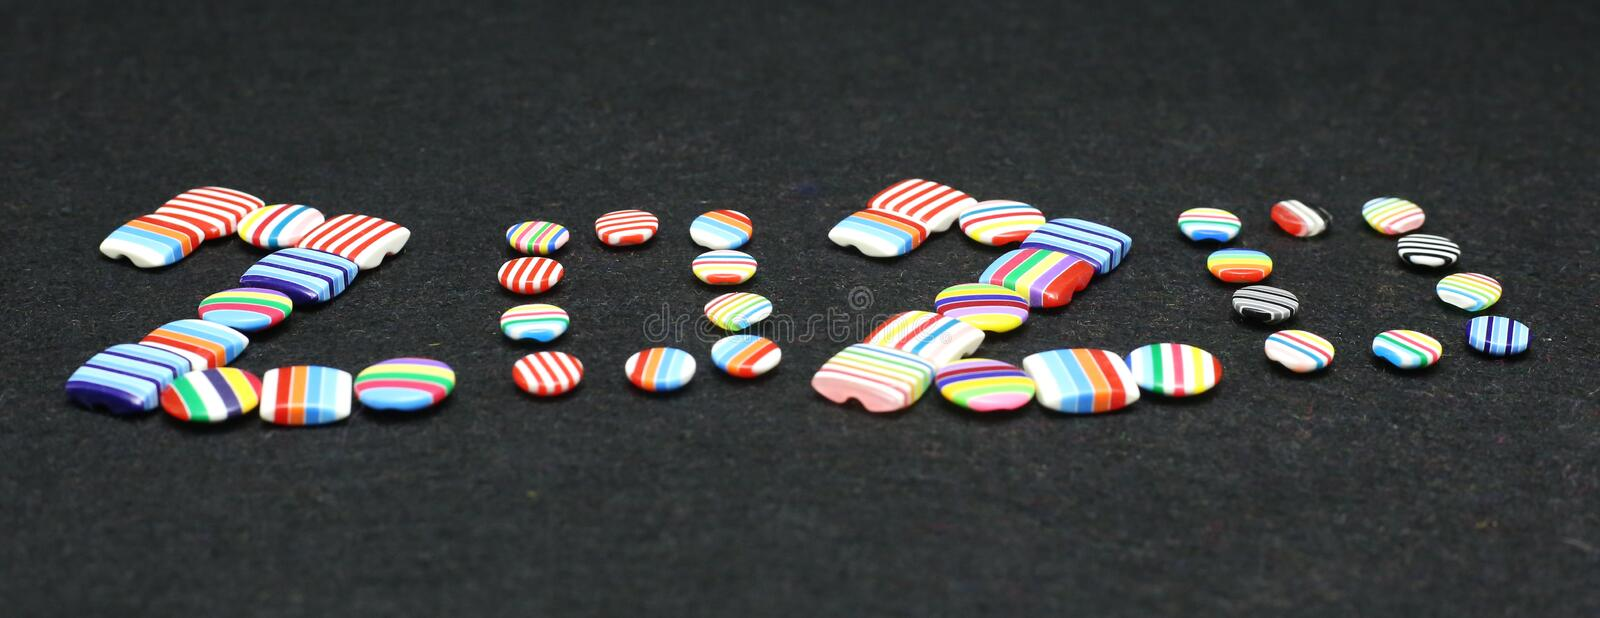 Happy new year 2020 clothing brand colorful buttons Photography. Merry Christmas 2020 sale on tailor shop. Happy new year 2020 clothing brand colorful stock photos